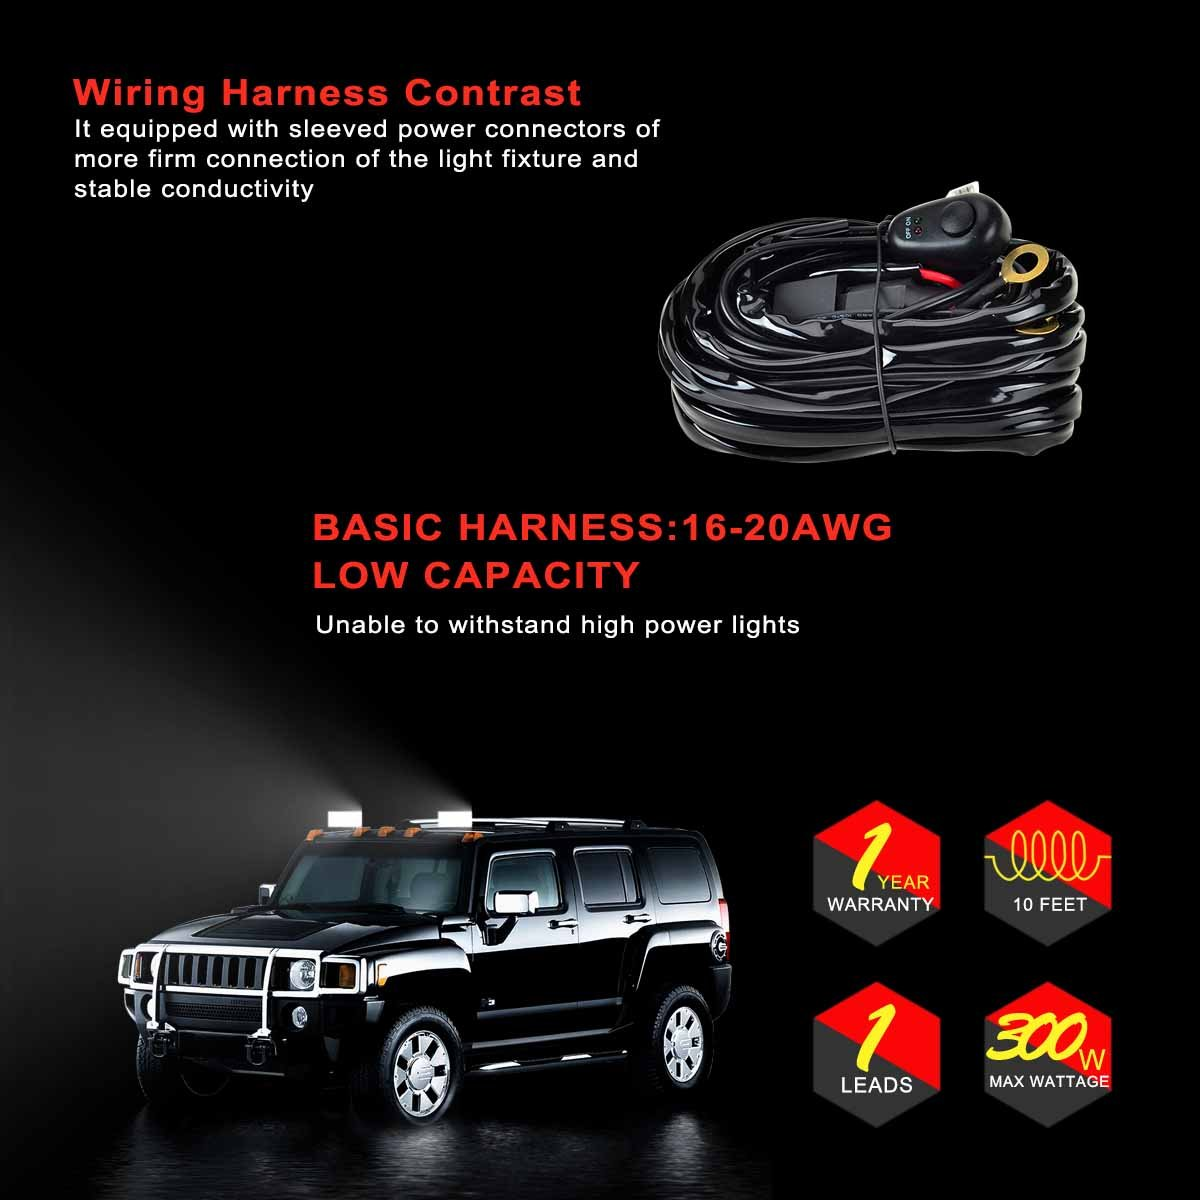 Kawell Wiring Harness For Led Light Bar Off Road Power Hummer H2 40a Relay Fuse On Switch 1 Lead 10feet Automotive